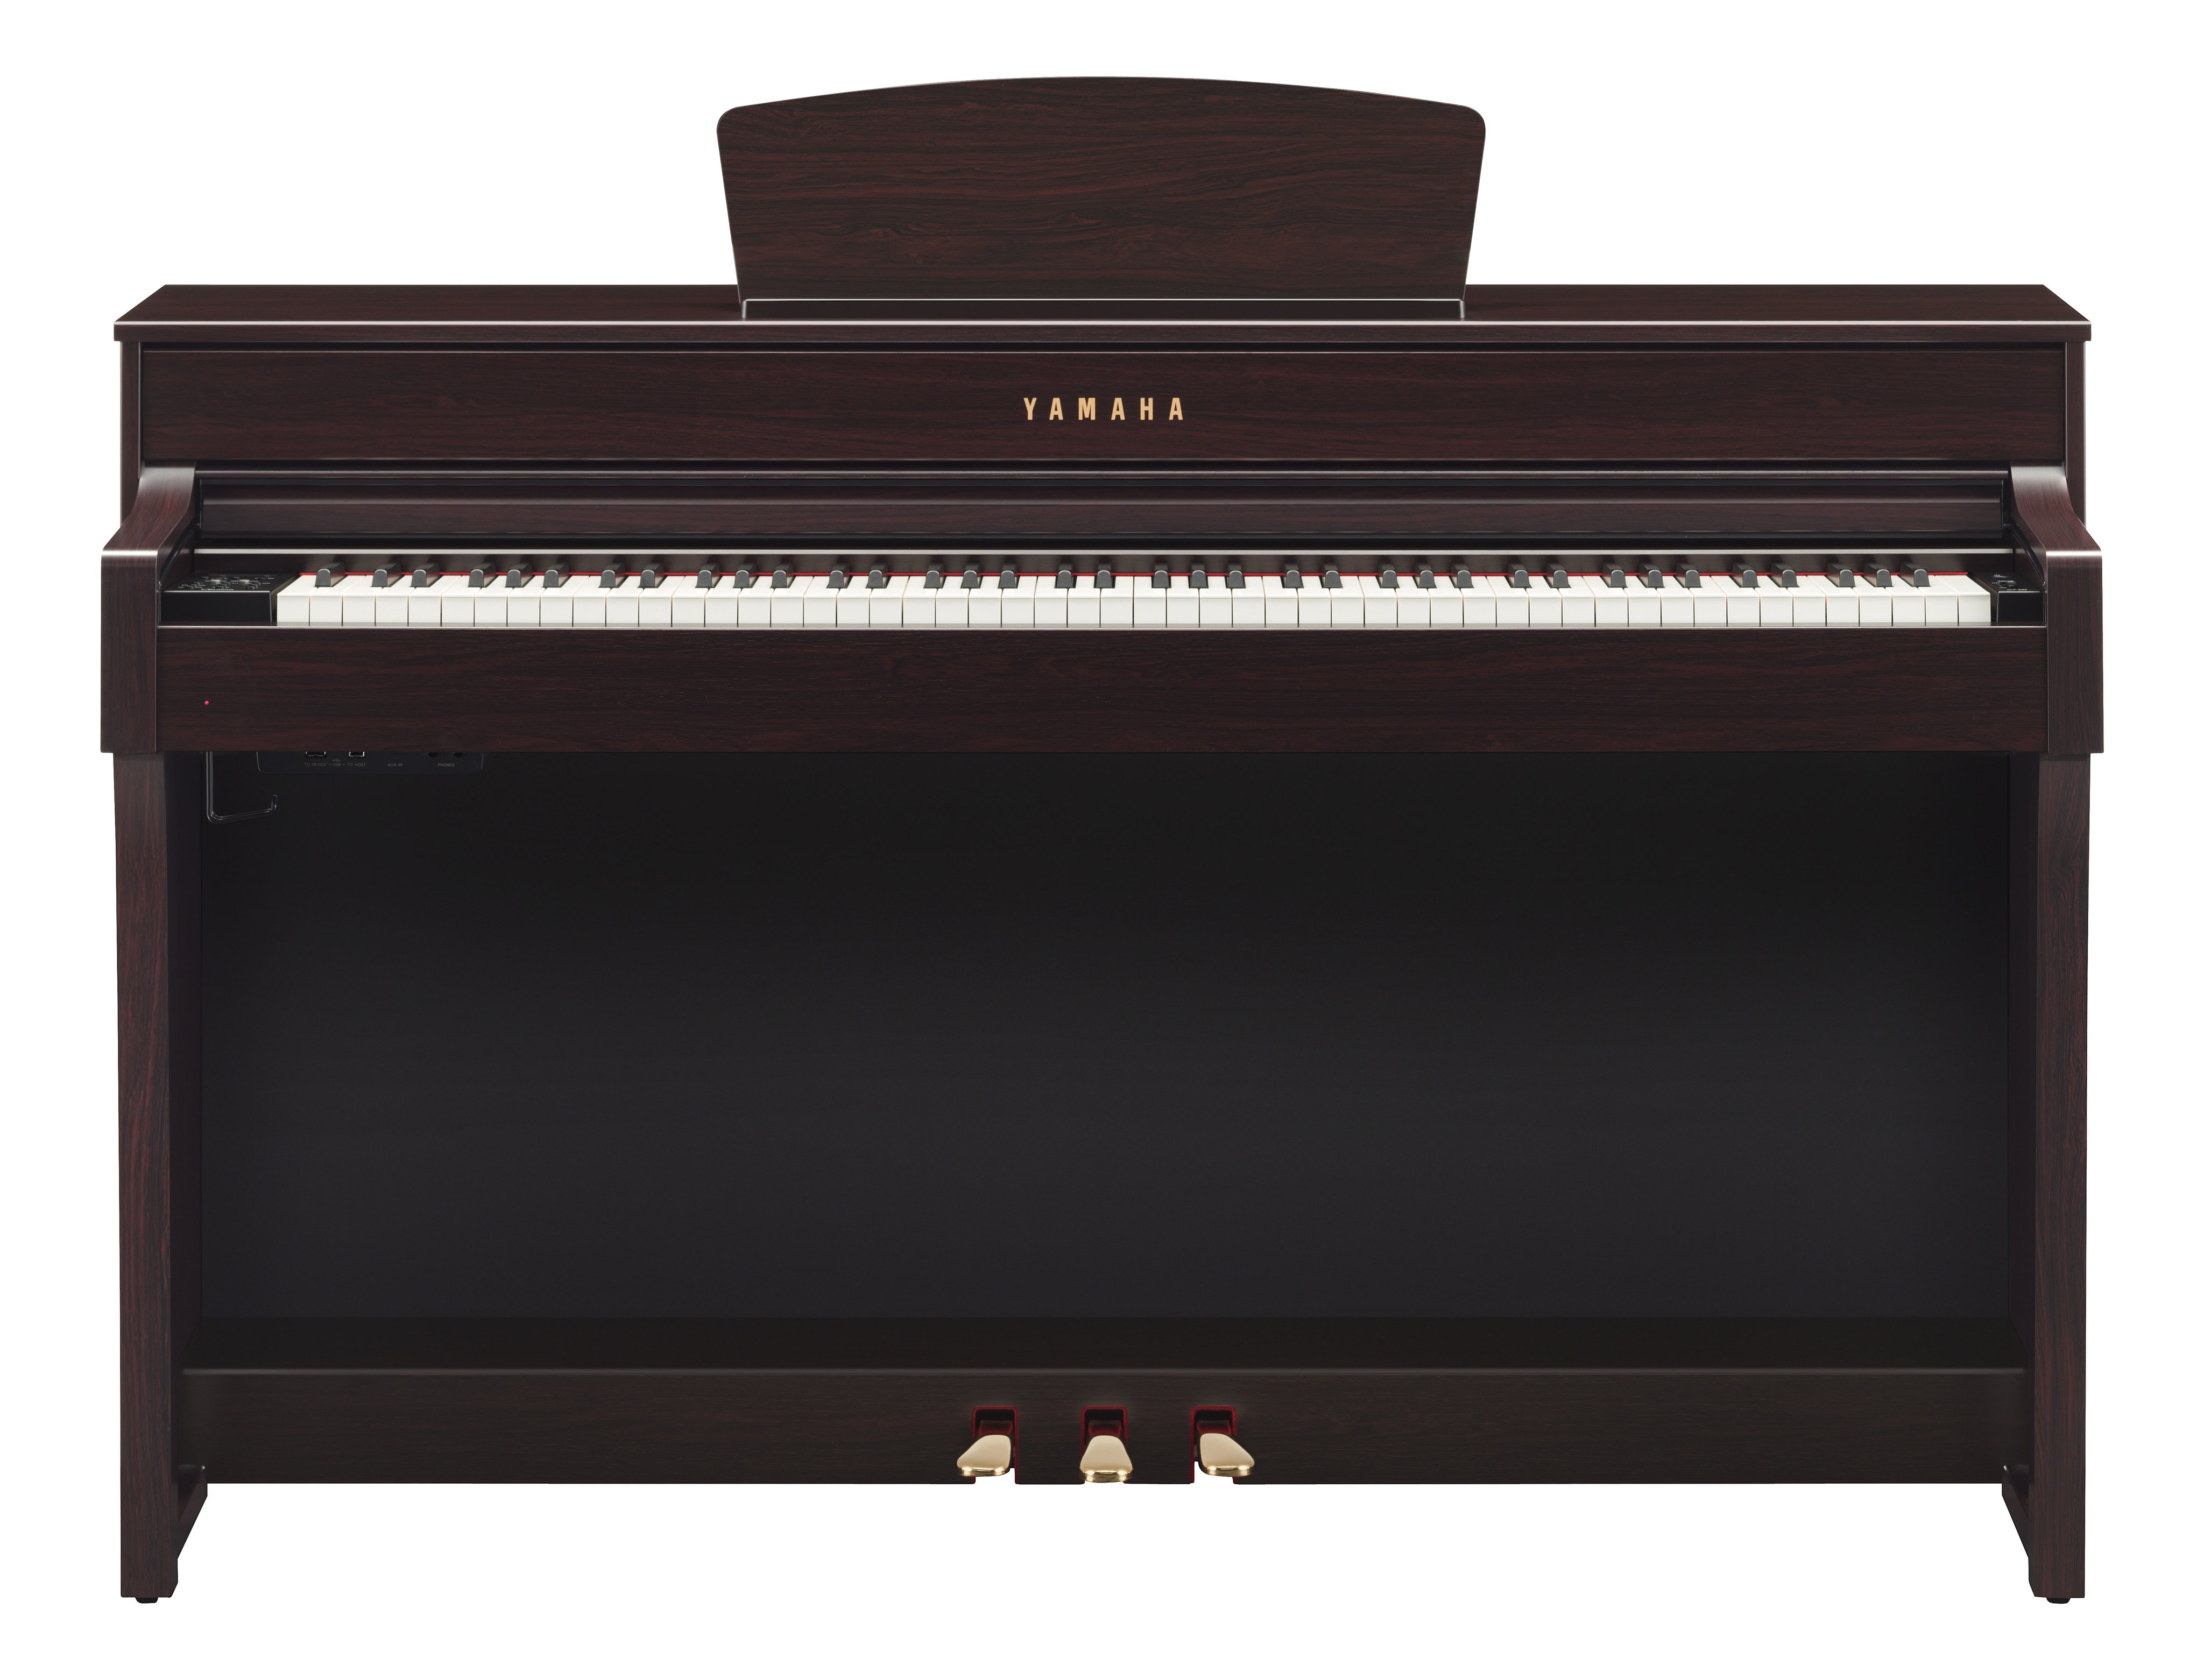 Yamaha Clp 635 Deluxe Clavinova Piano Pack In Rosewood